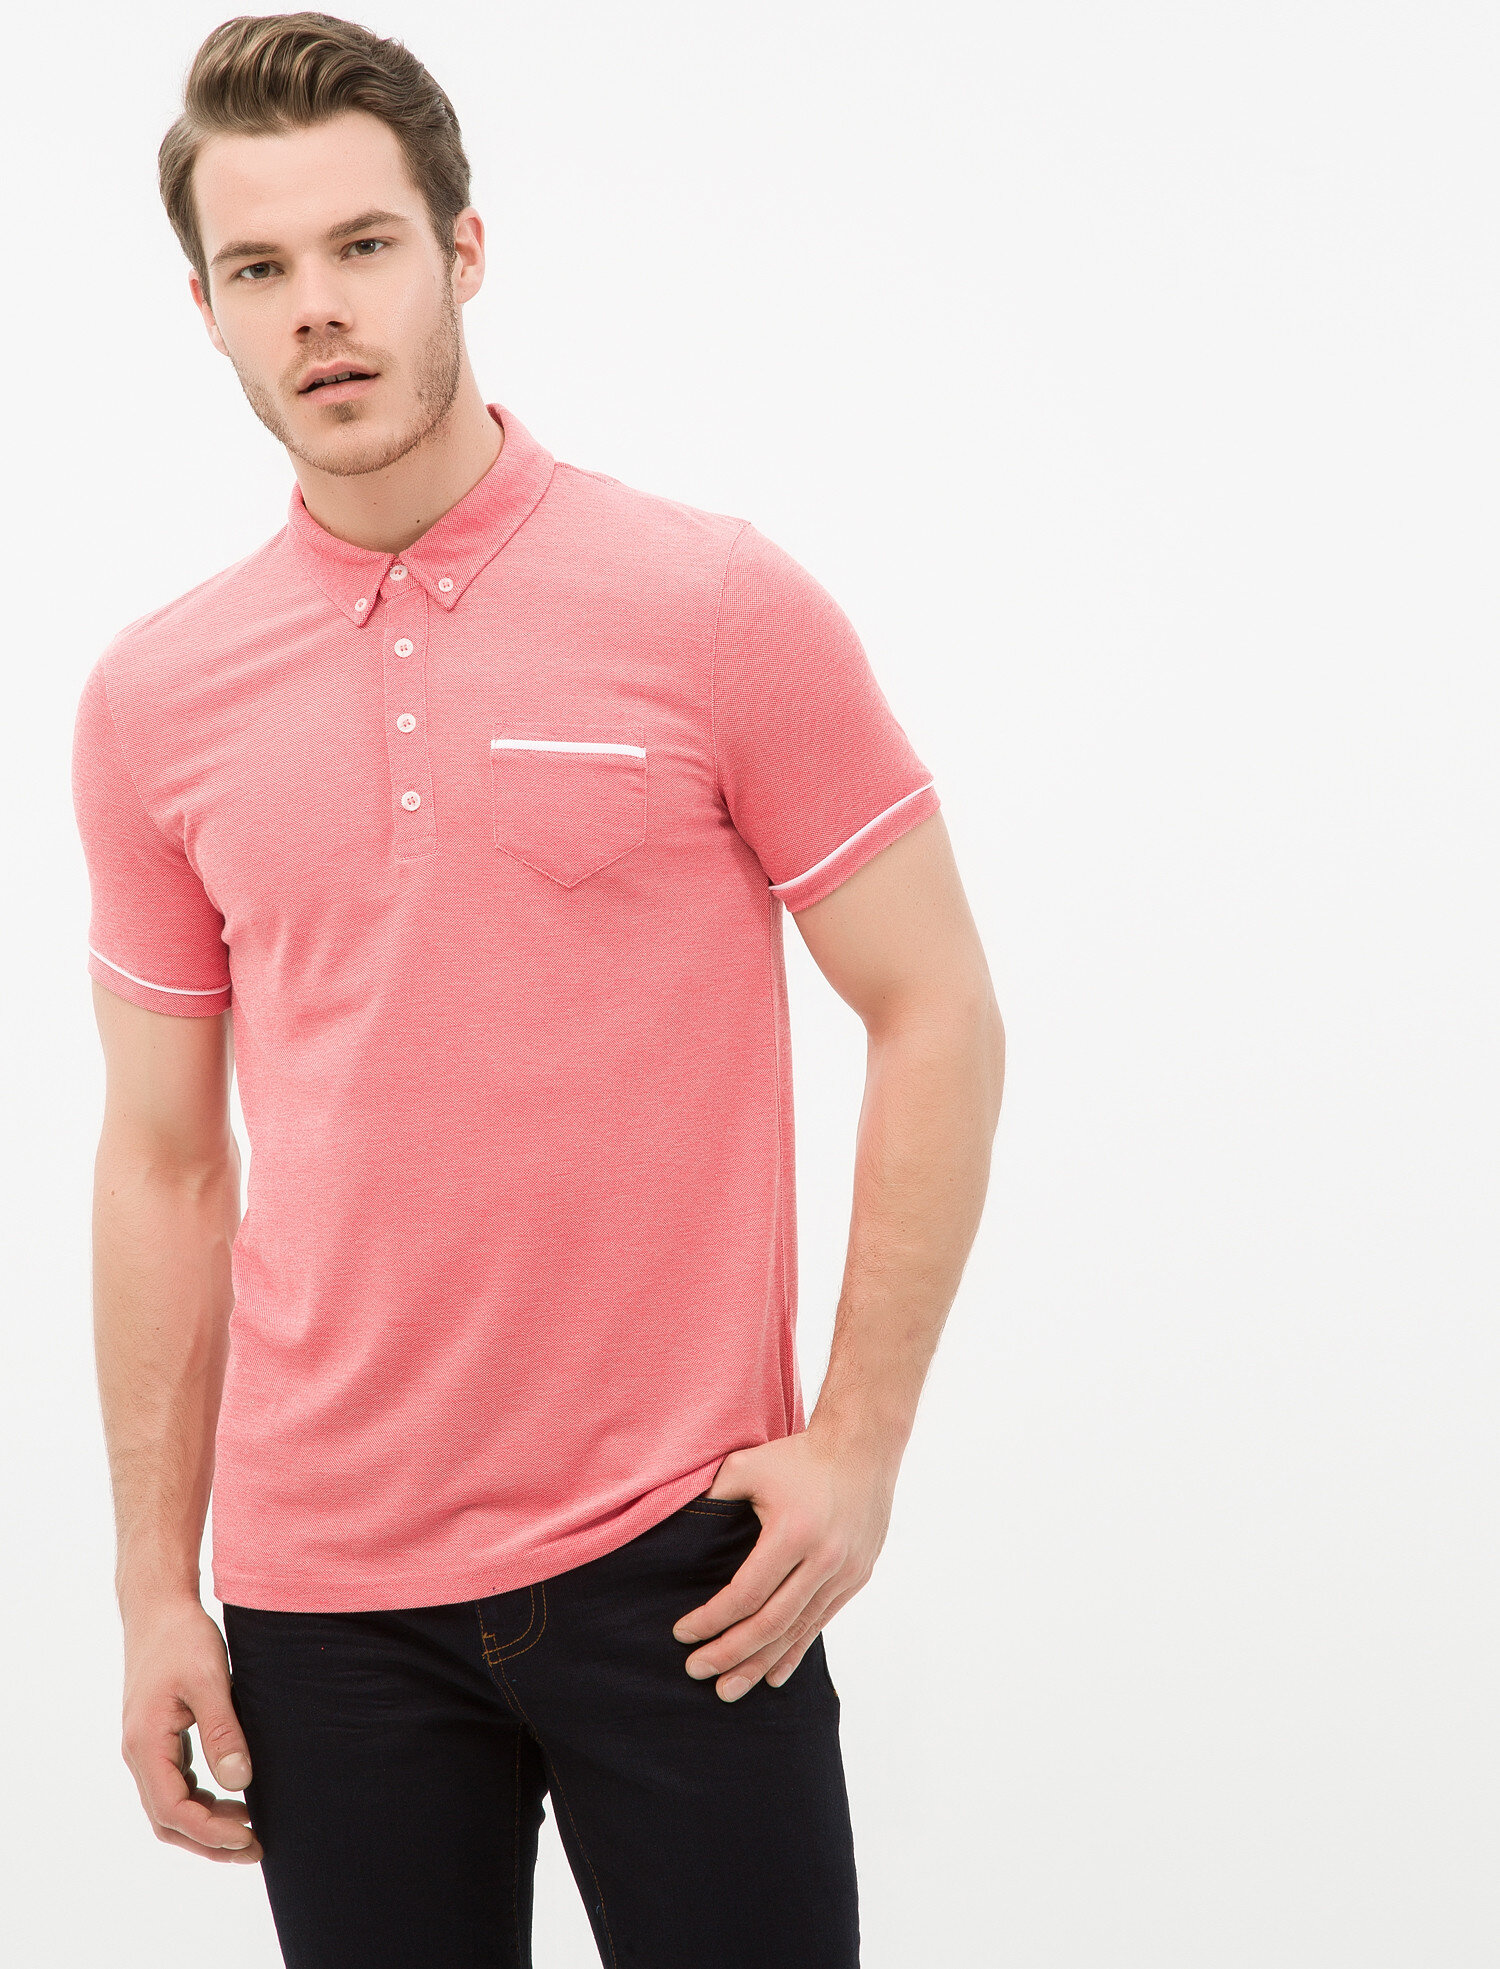 Find Men's Polos at 0549sahibi.tk Enjoy free shipping and returns with NikePlus. Click for a different version of this web site containing similar content optimized for screen readers. Hurley Channels Polo. Men's Long Sleeve Shirt. $50 $ Prev. Next. 2 Colors. Nike Dri-FIT Victory.